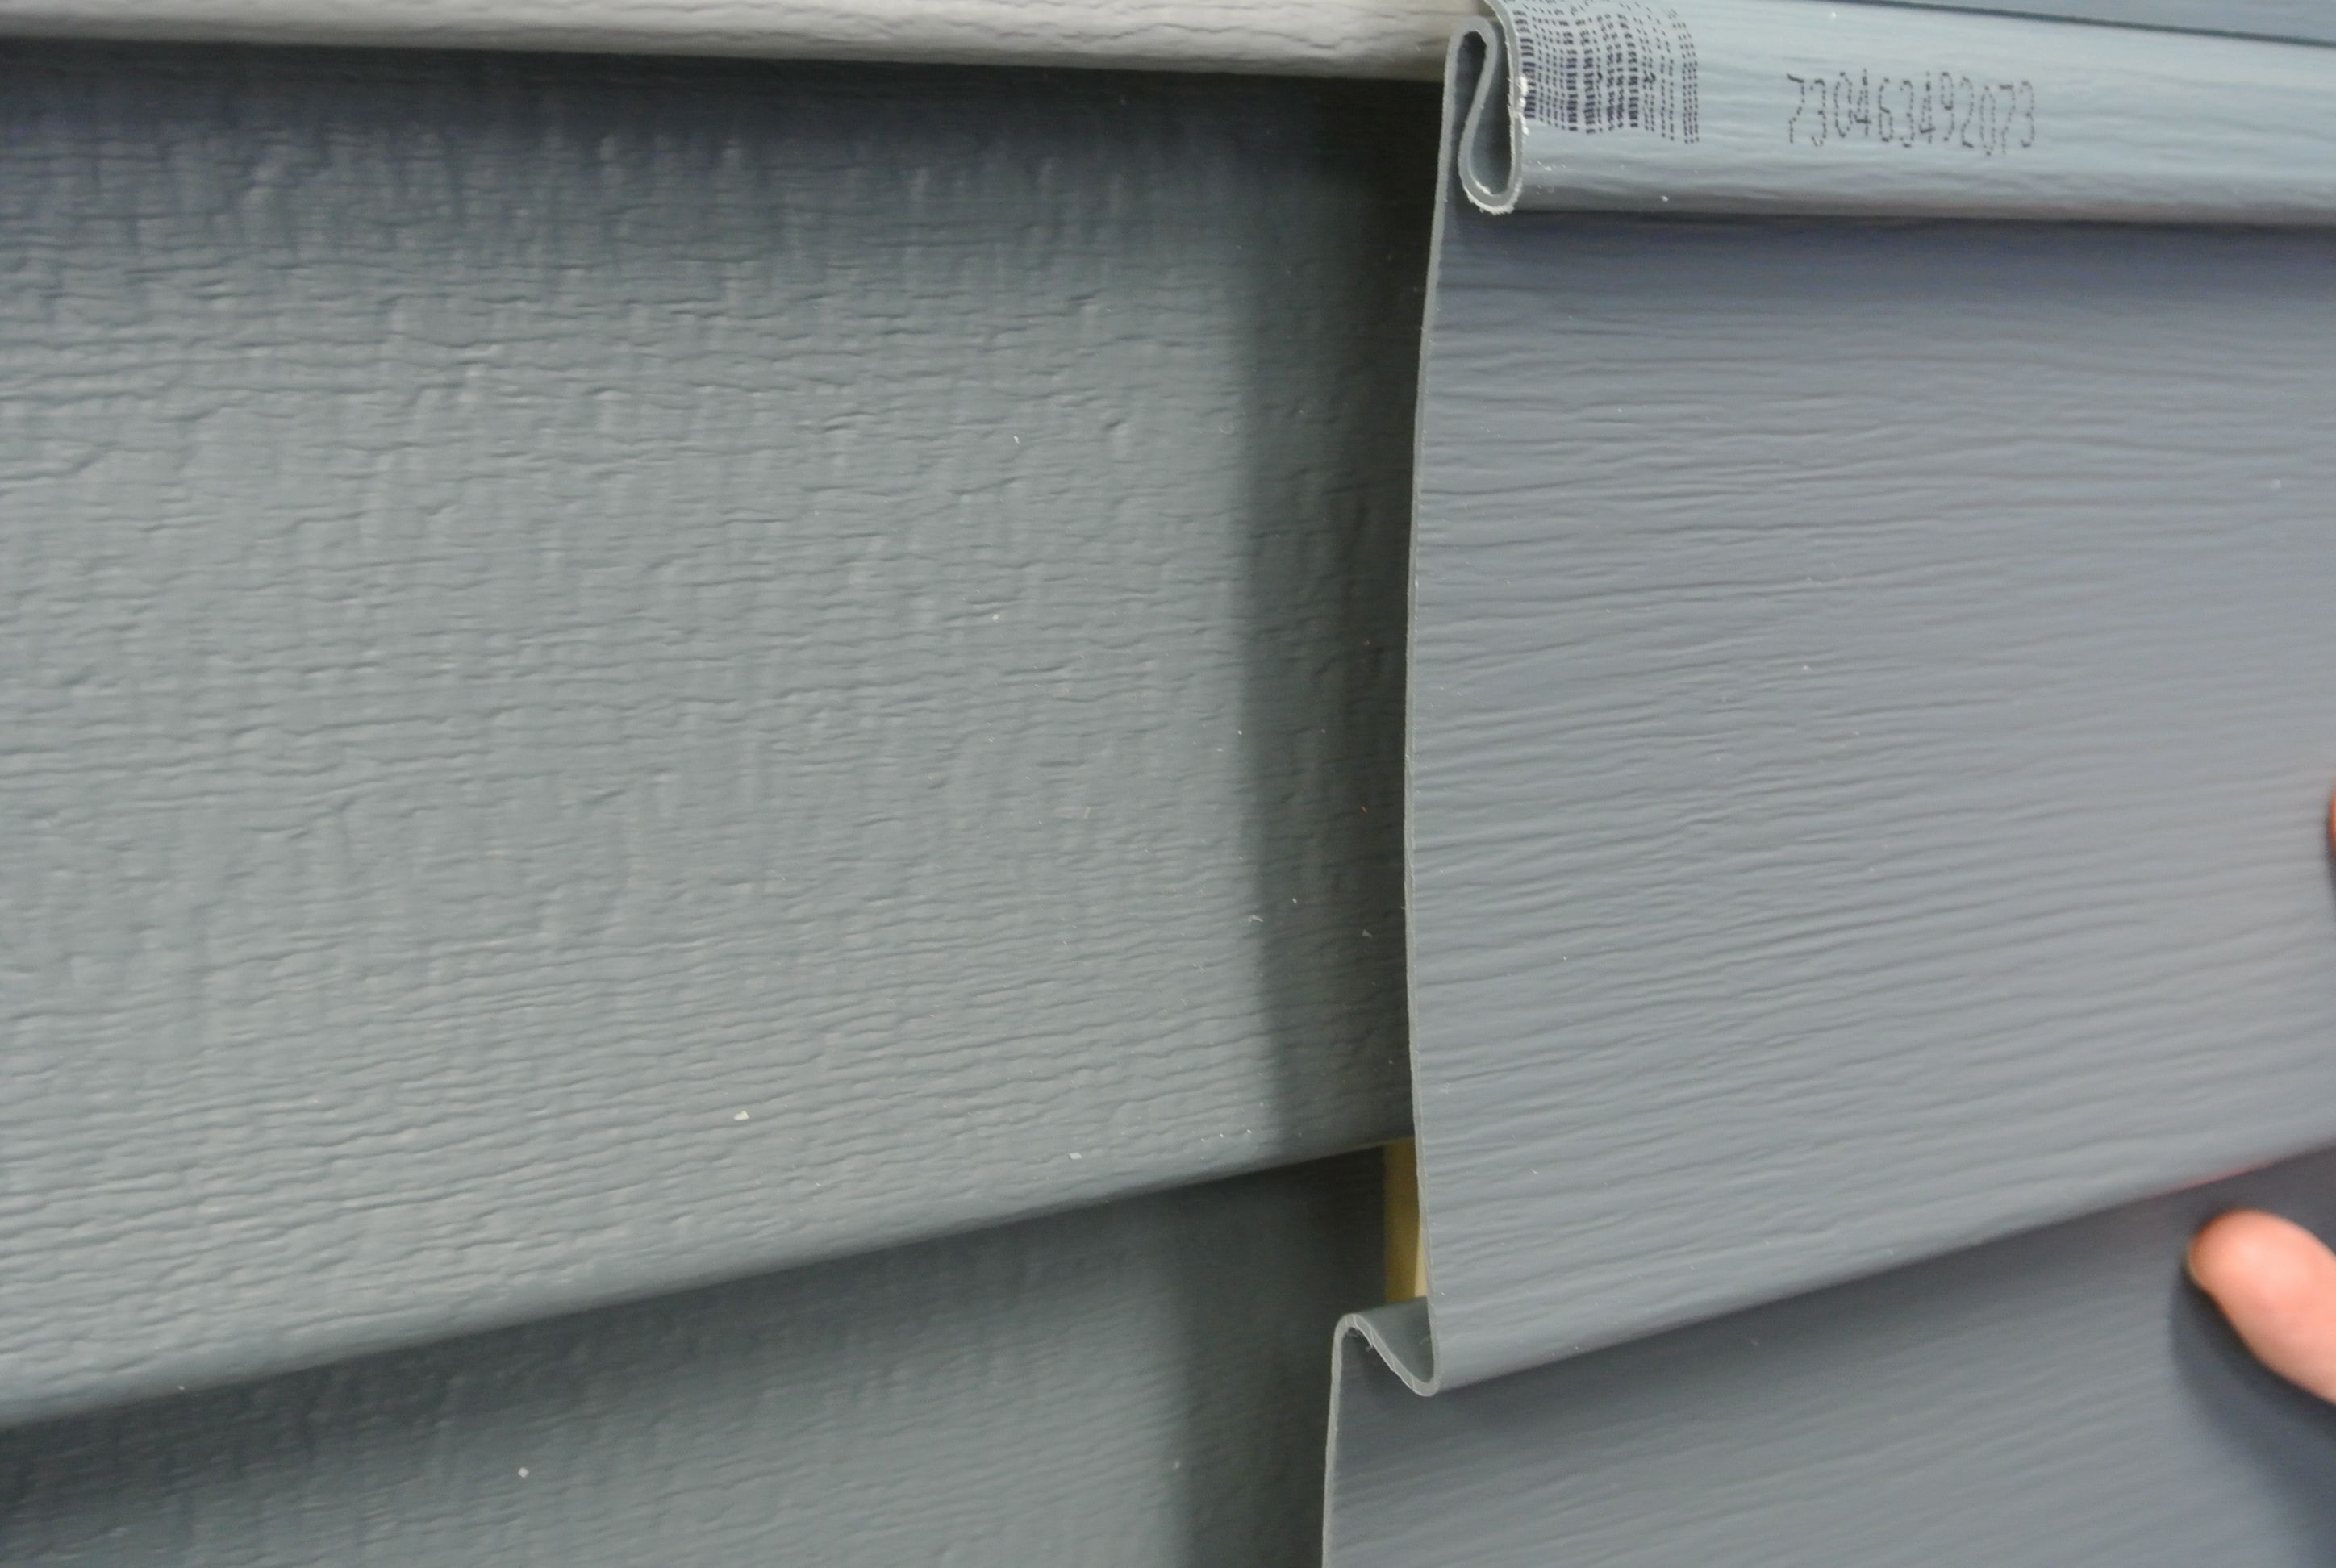 Pacific Blue Vinyl Siding By Certainteed The Style On The Left Is Monogram And On The Right Is Restoration Classic T Blue Vinyl Siding Vinyl Siding Blue Vinyl